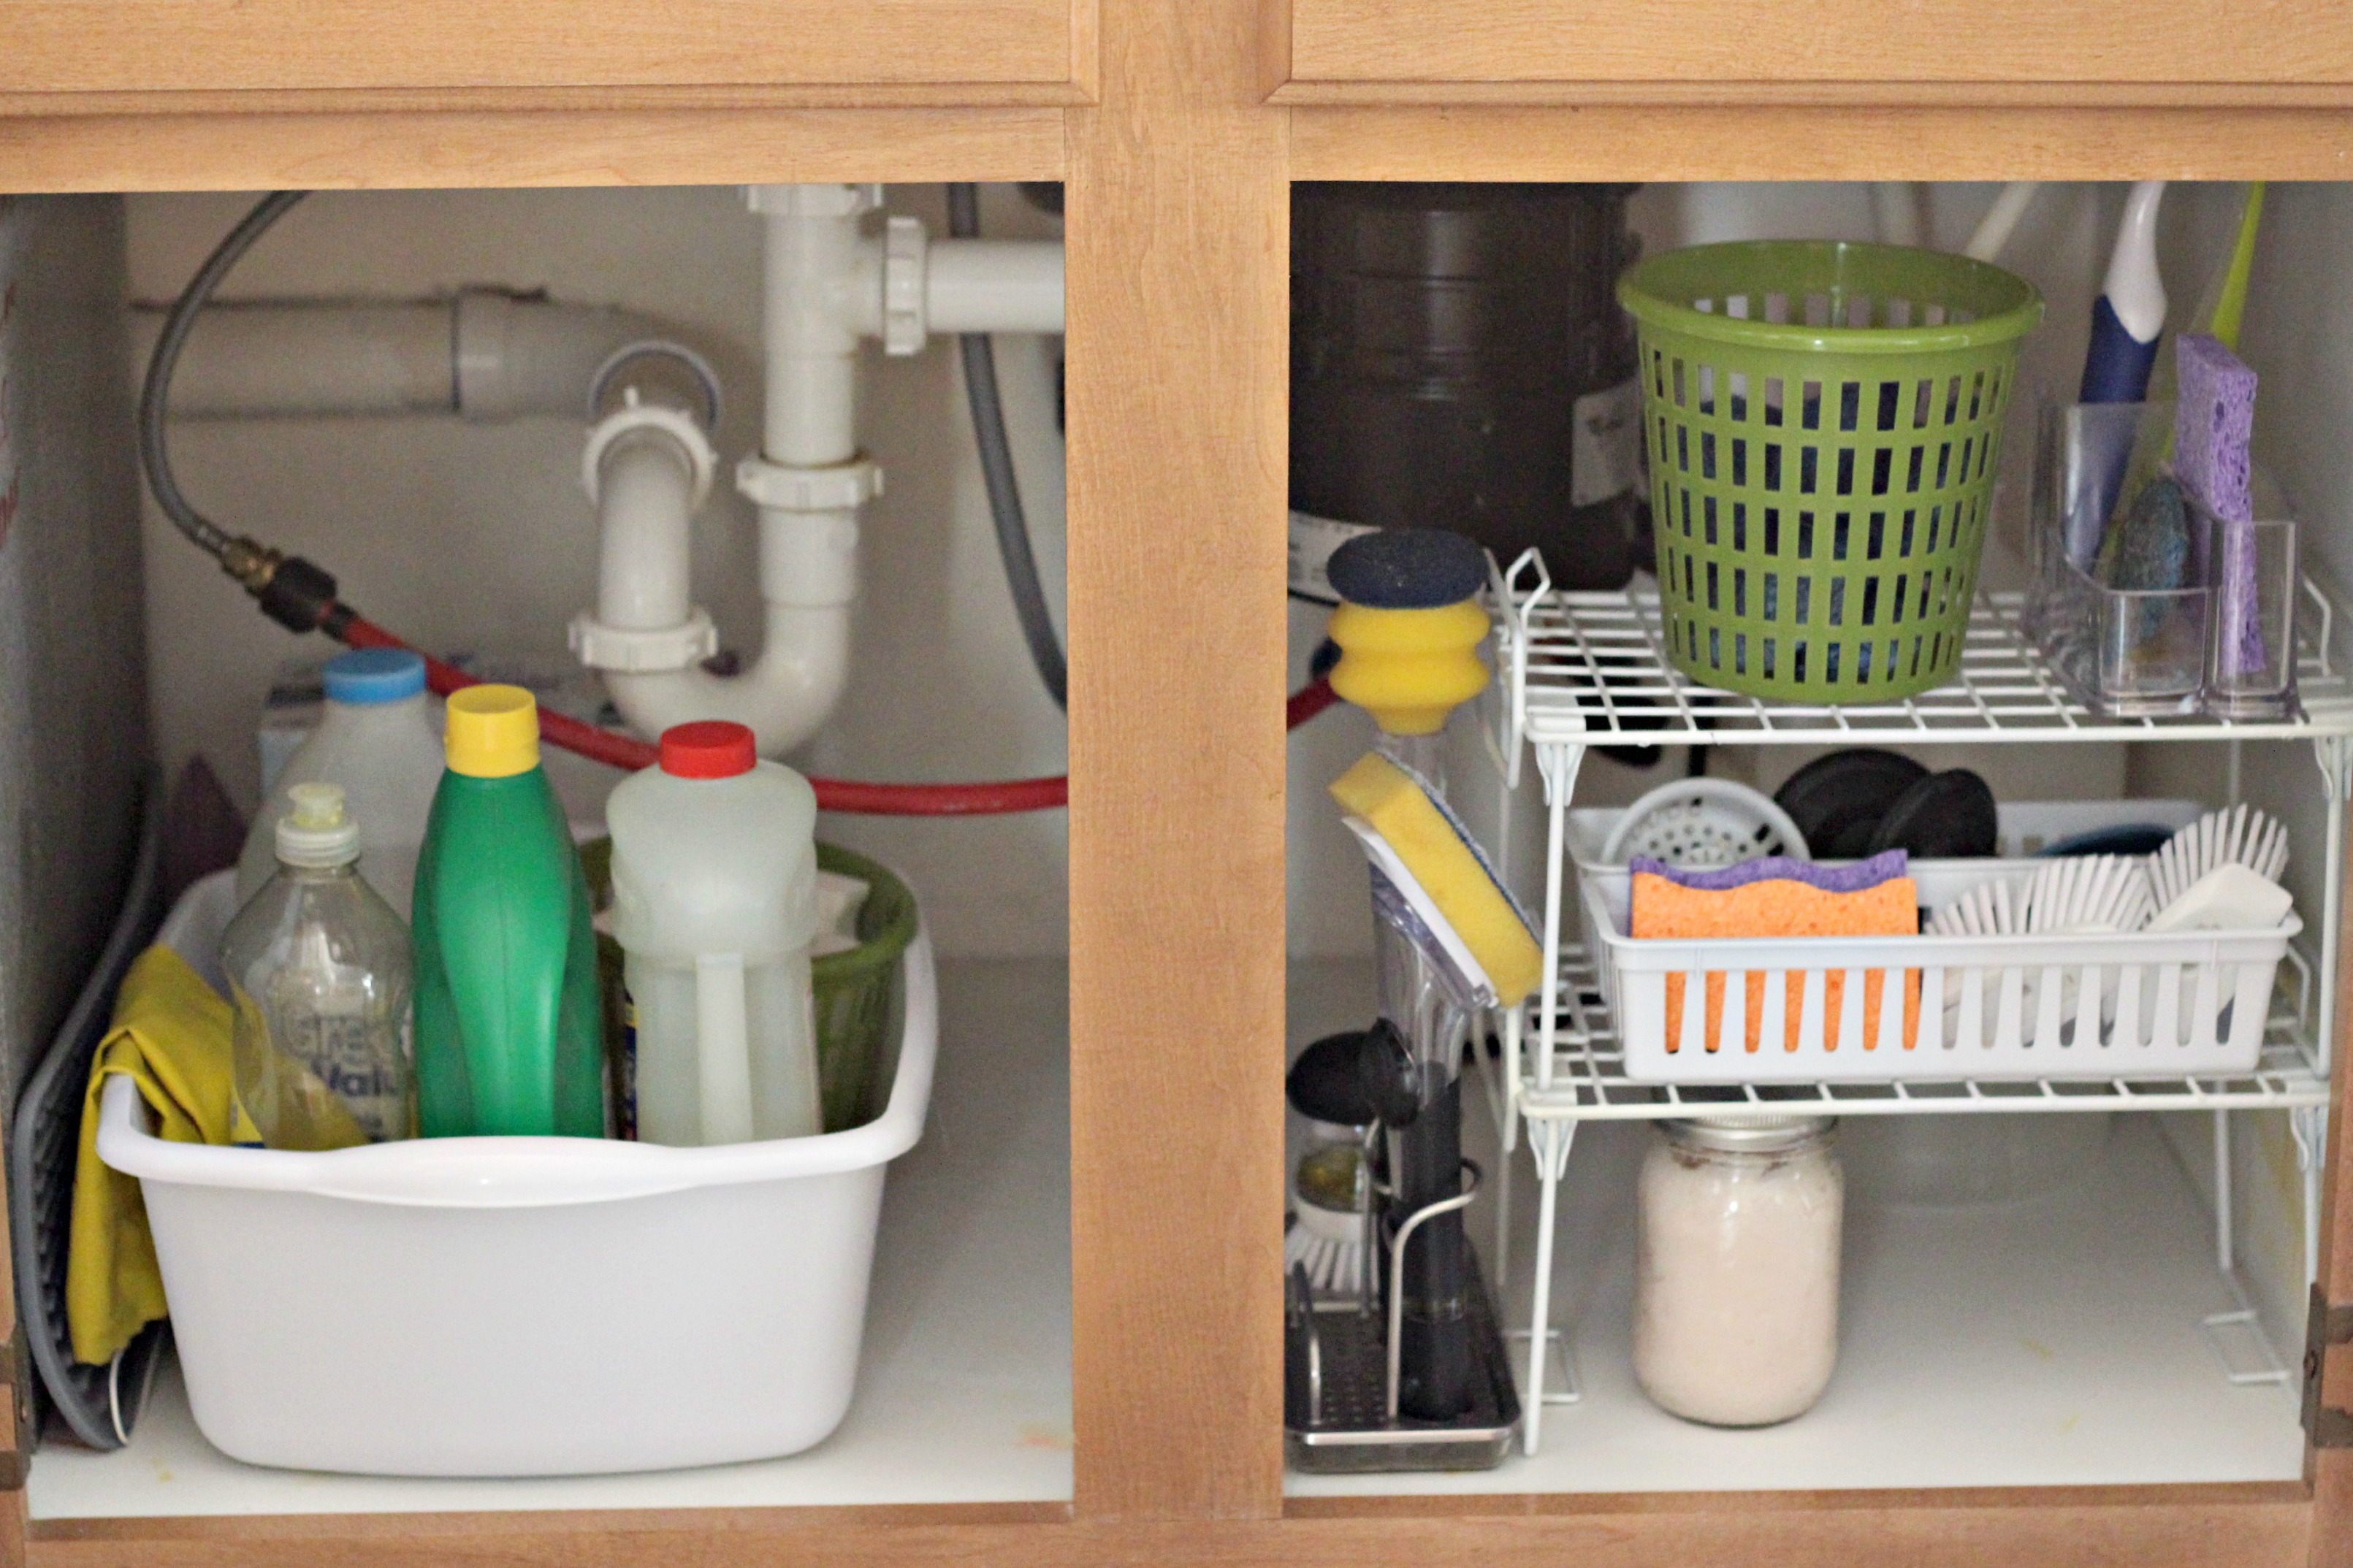 31 days of 15 minute organizing - day 12: under the kitchen sink